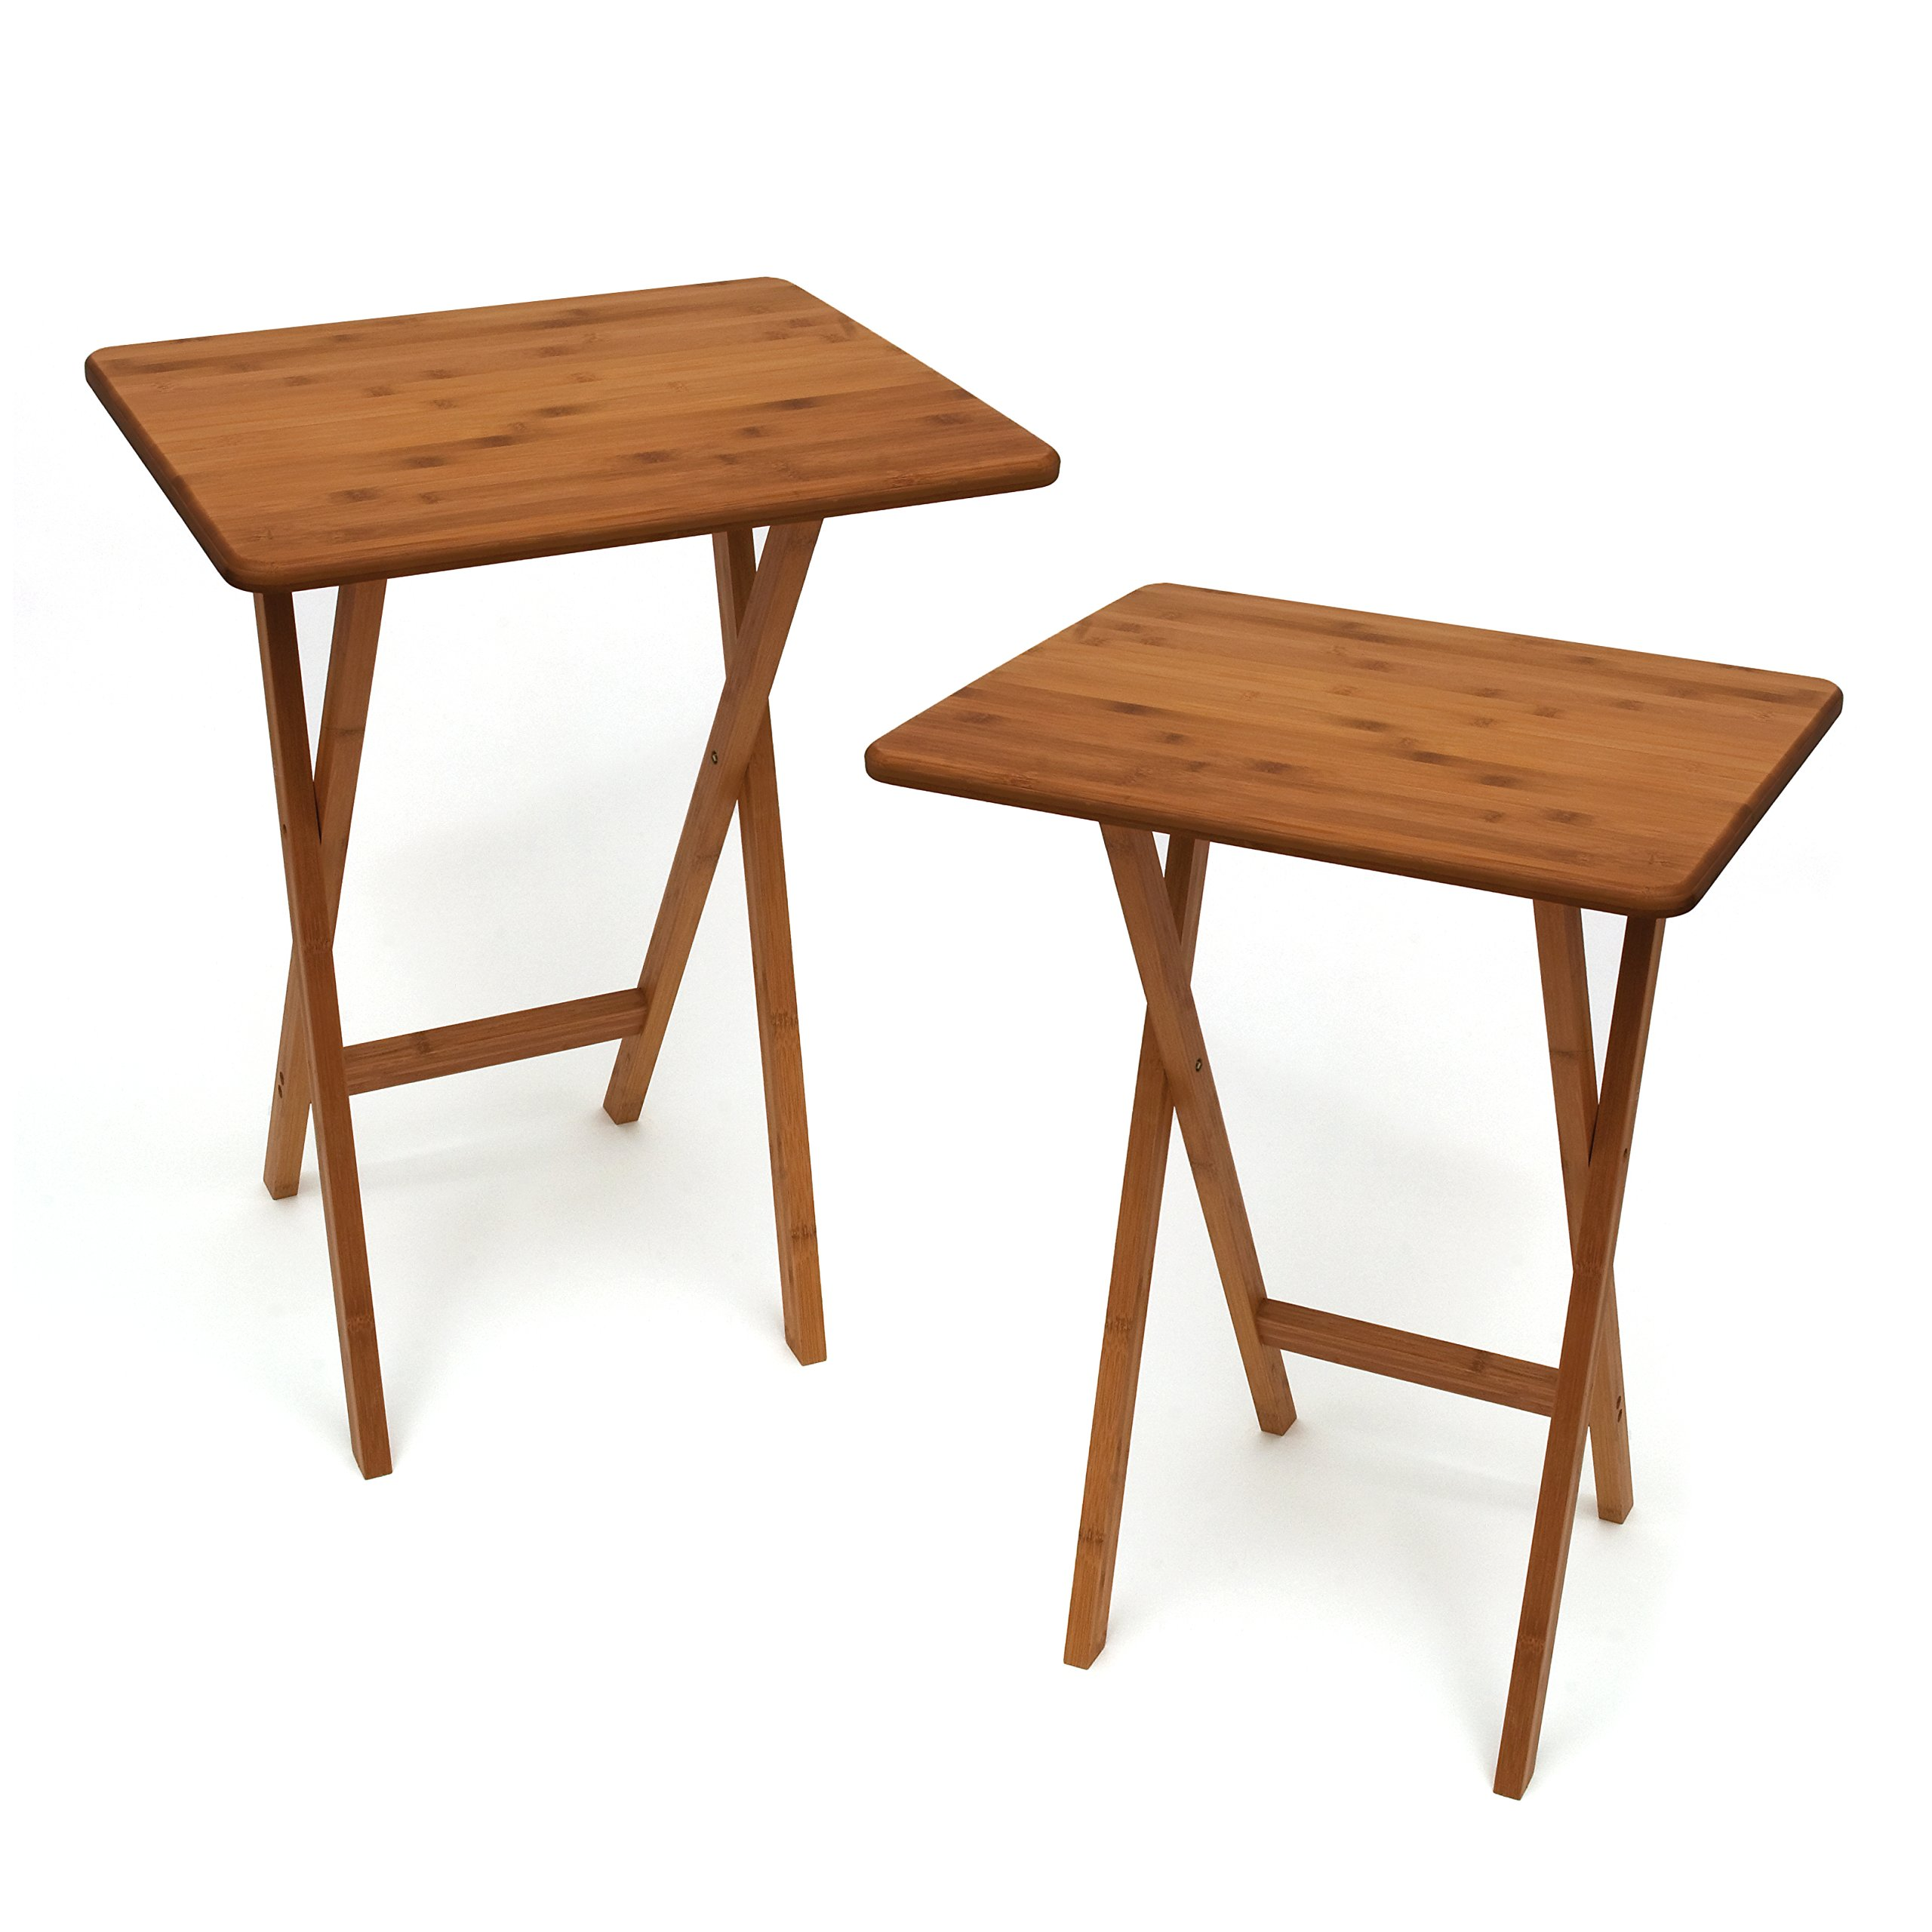 "Lipper International 803-2 Bamboo Wood Rectangular Snack Tables, 18.75"" x 15"" x 24.75"", Set of 2 Tables"